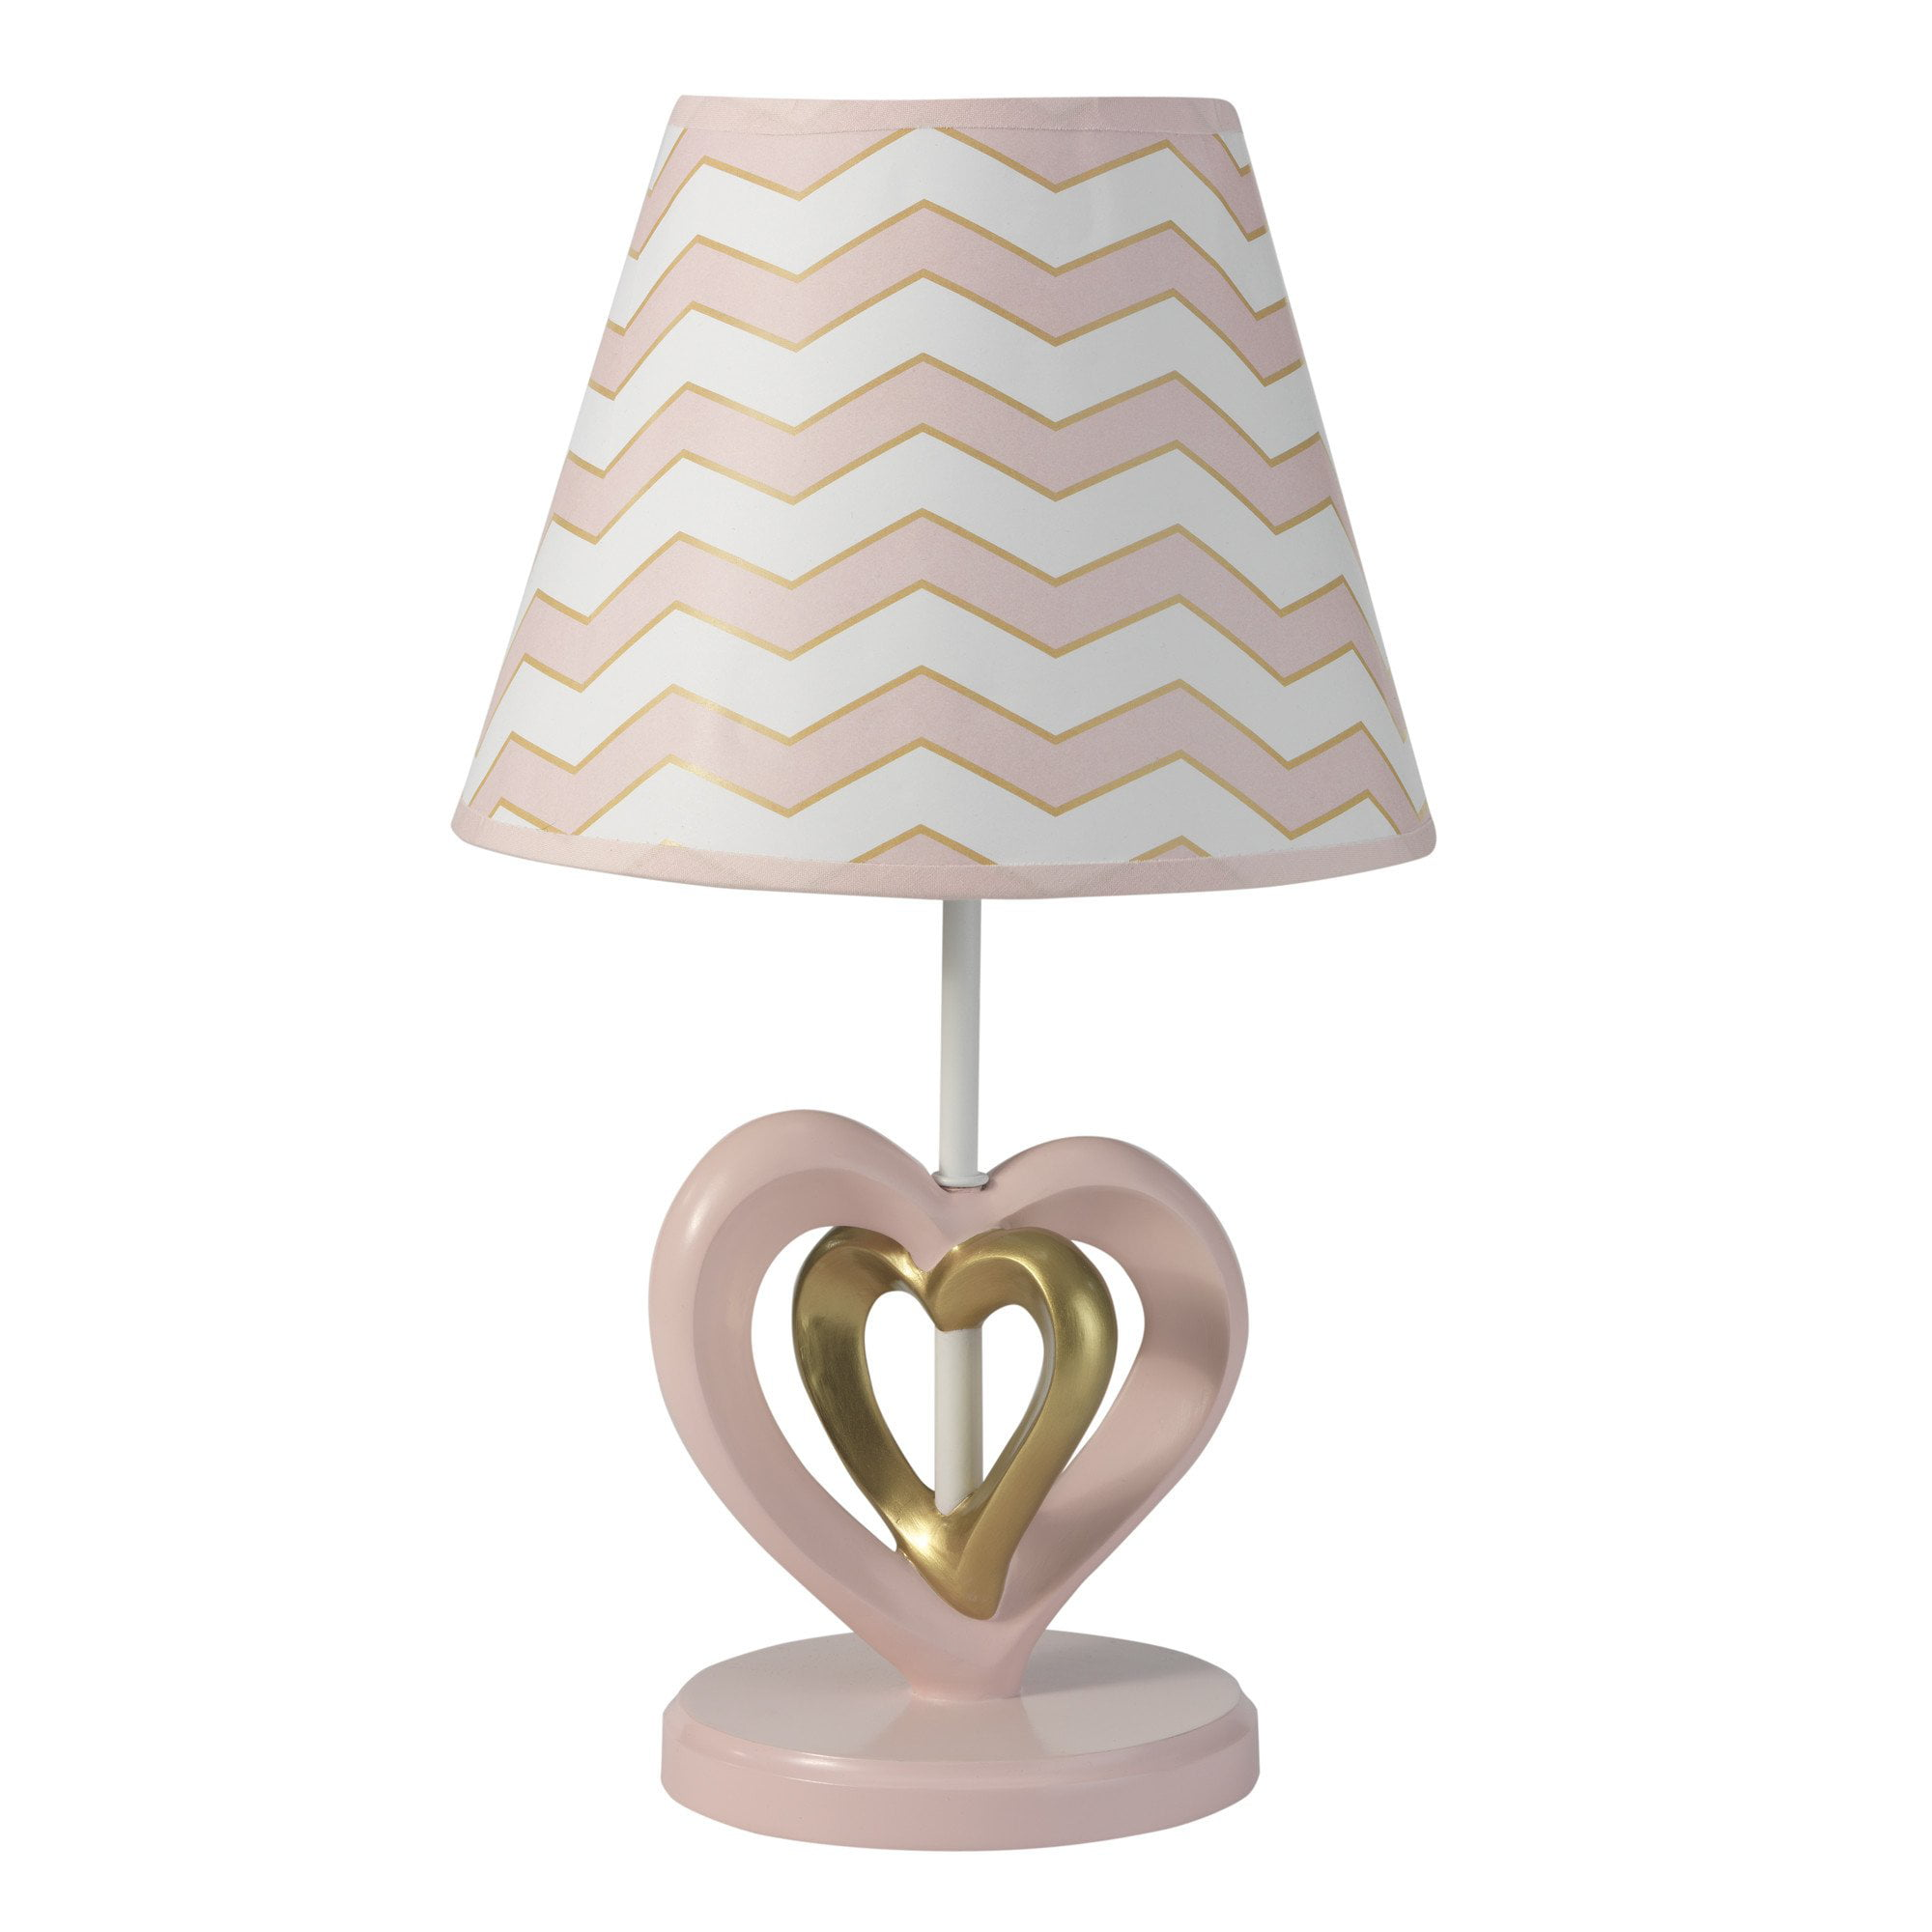 Lambs & Ivy Baby Love Lamp with Shade & Bulb Pink, Gold, White, Love, Hearts by Lambs %26 Ivy